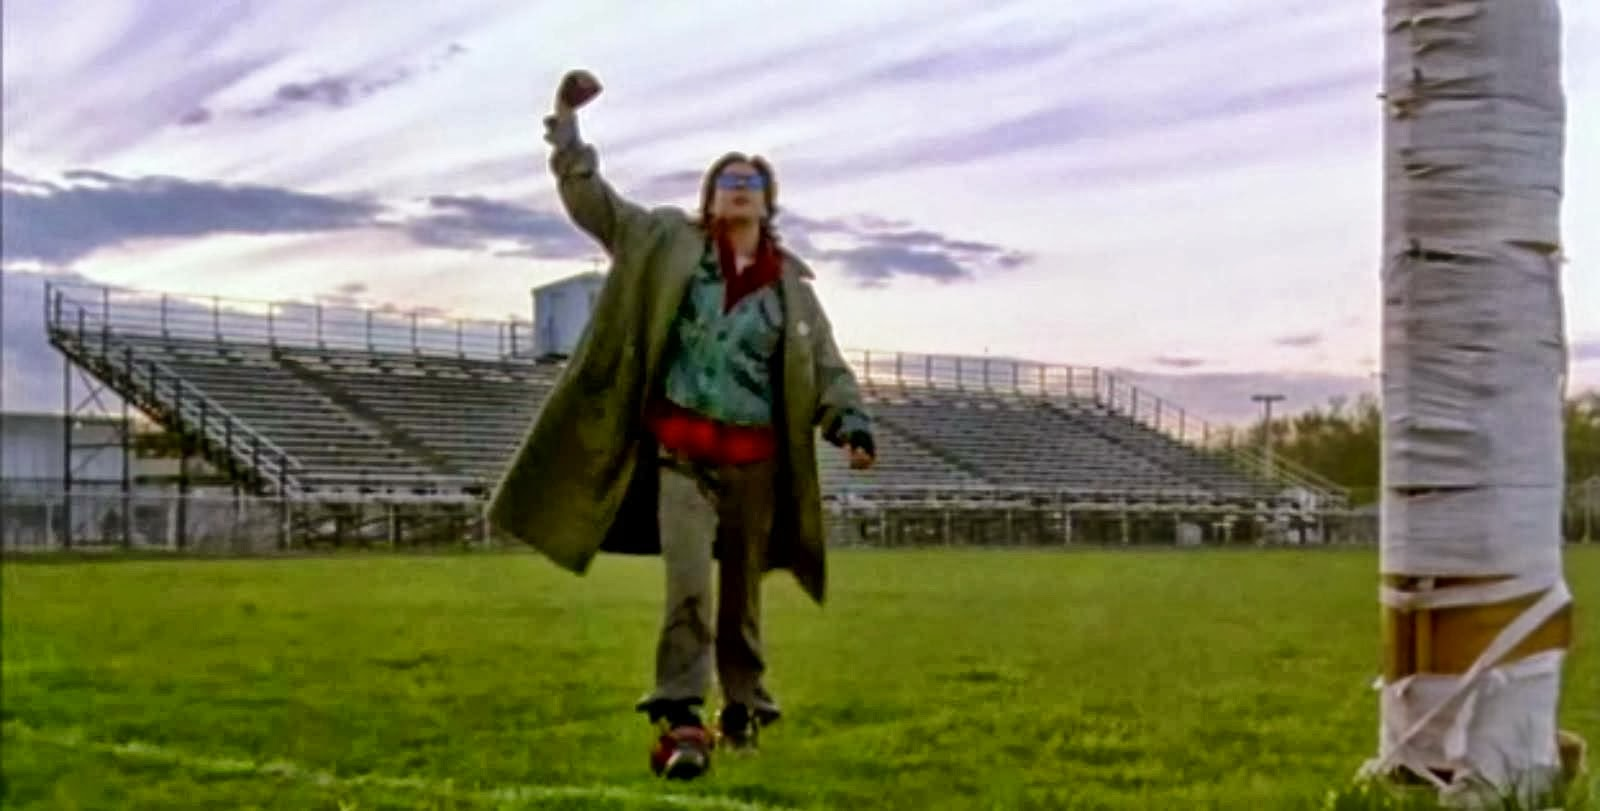 The breakfast club essay at end